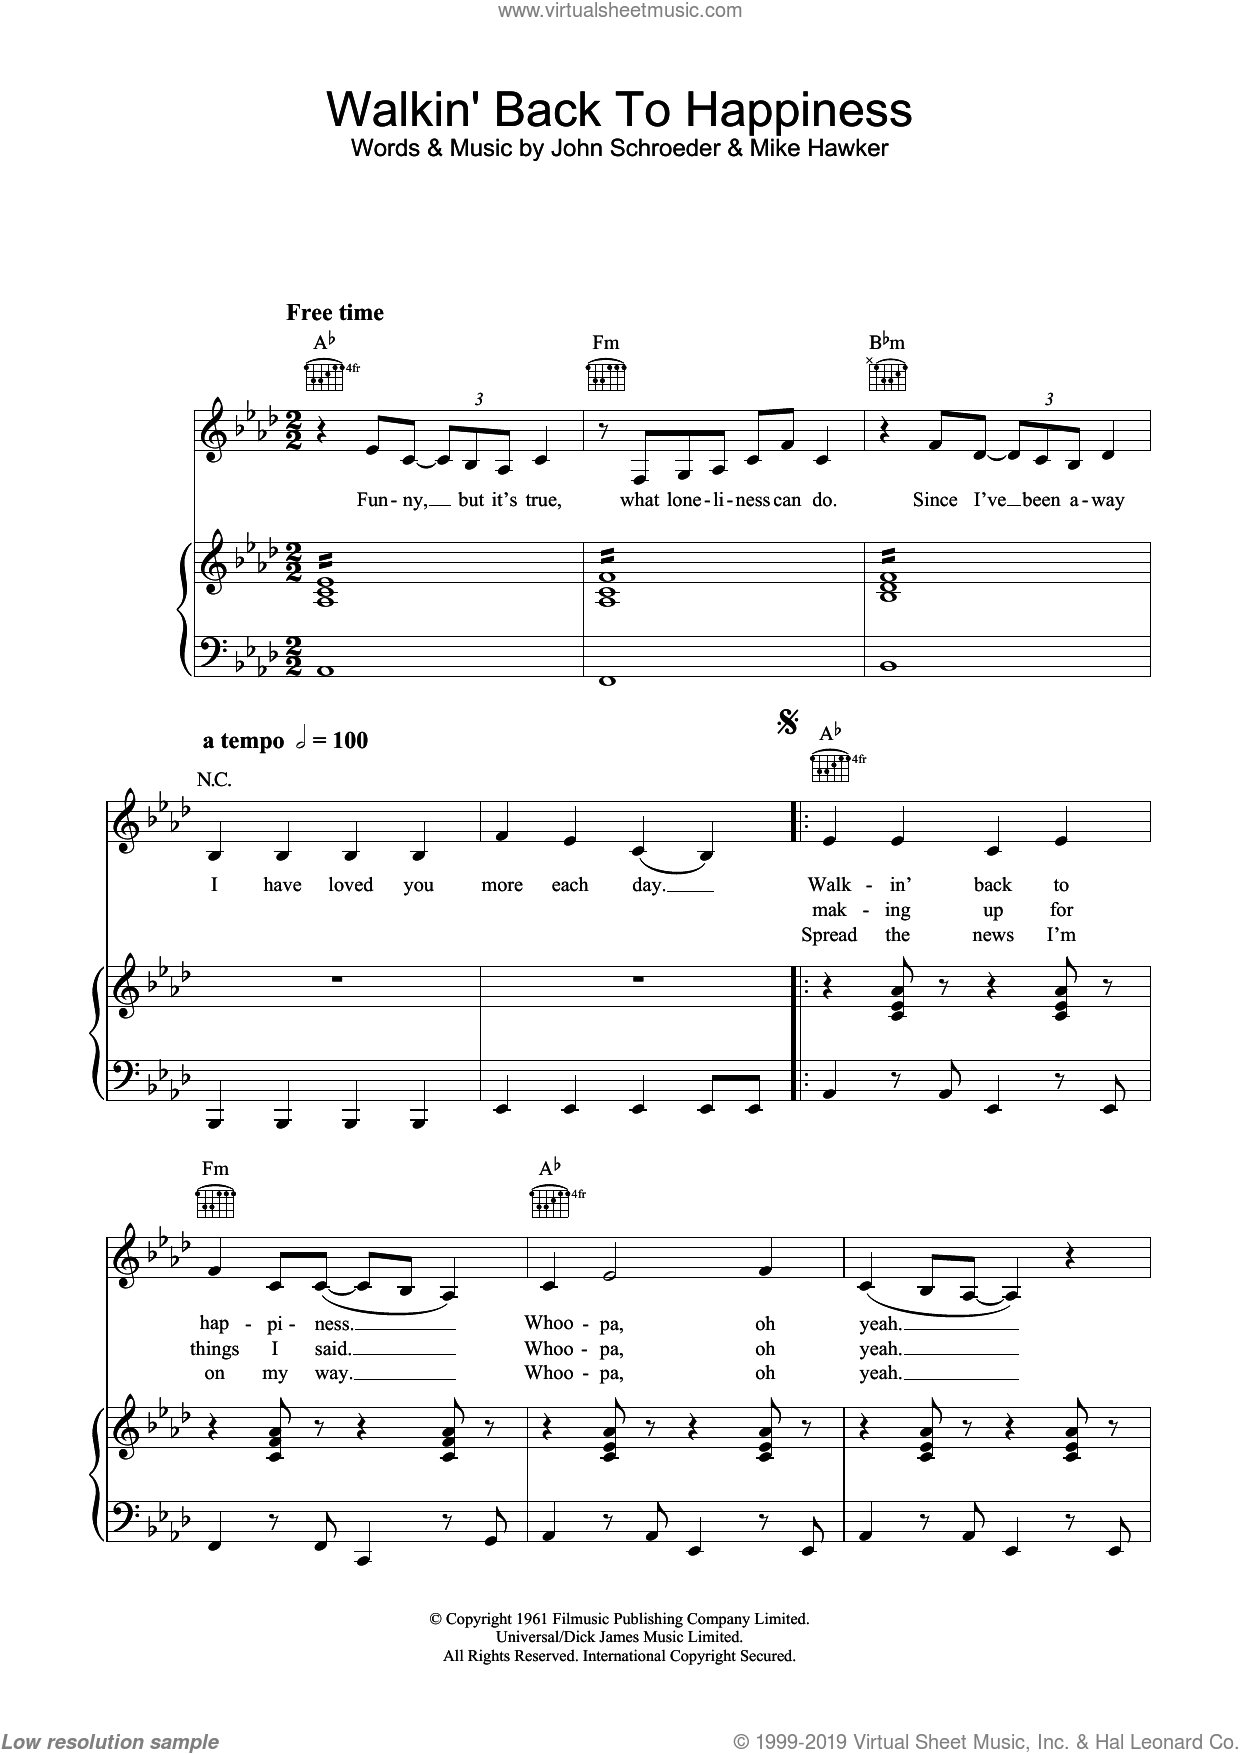 Walkin' Back To Happiness sheet music for voice, piano or guitar by Helen Shapiro, John Schroeder and Mike Hawker, intermediate skill level